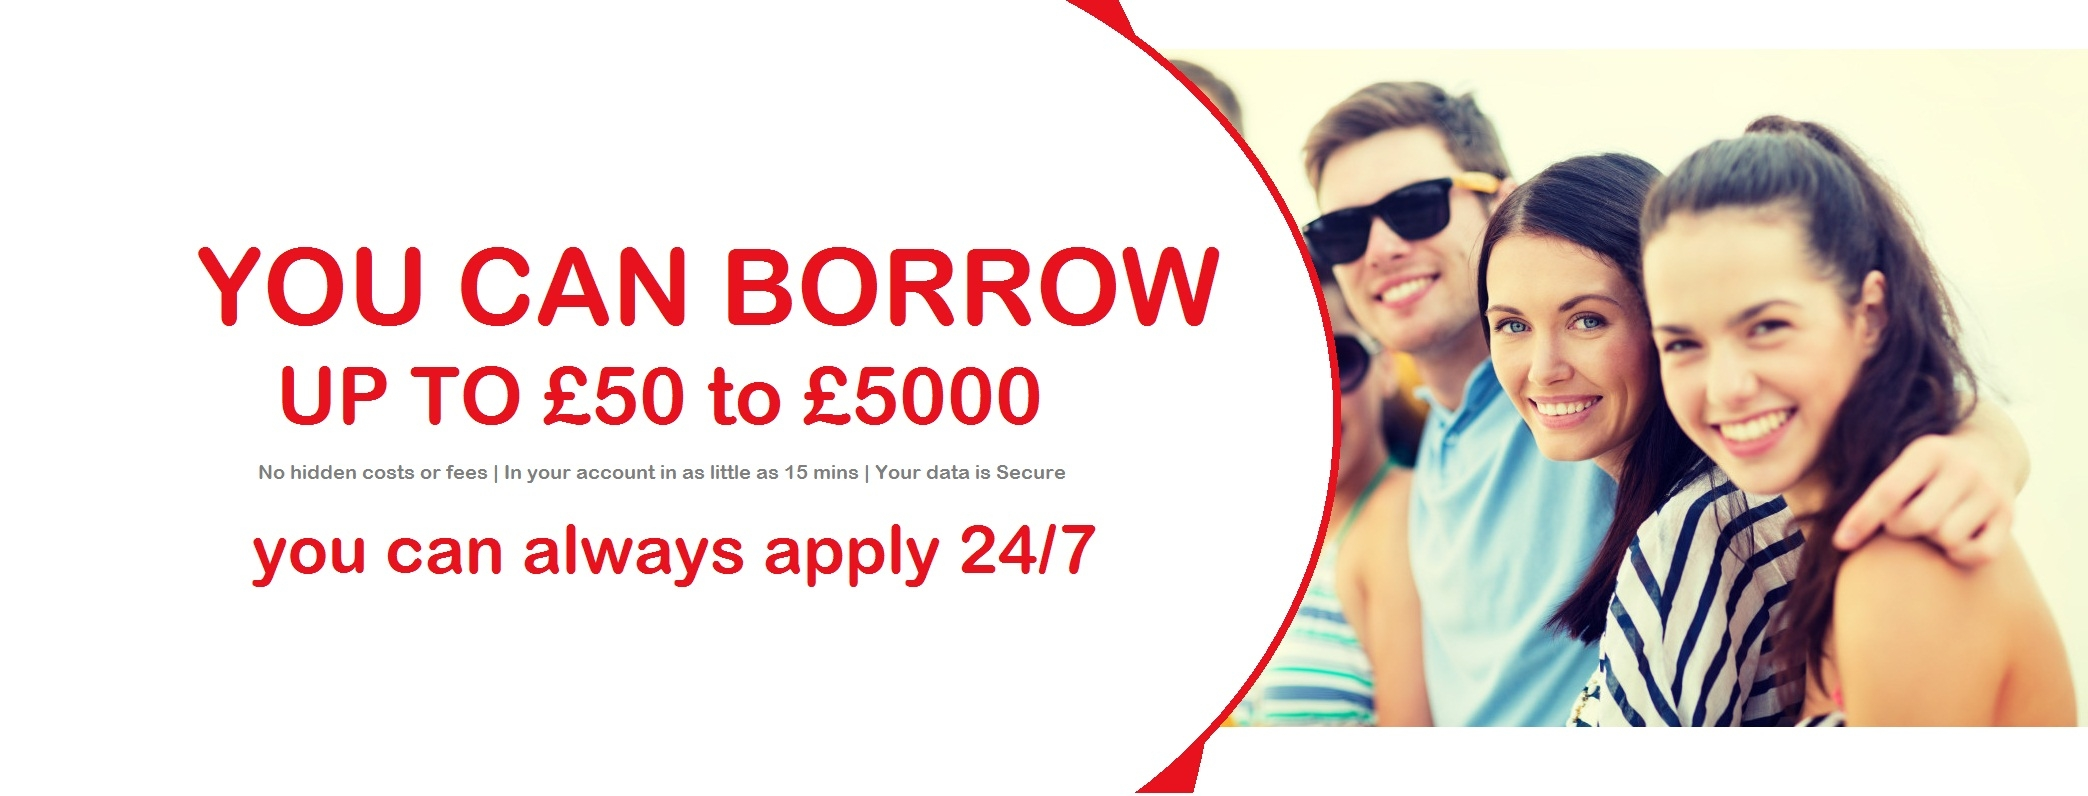 loans for people on benefits (@loansforpeopleonbenefits) Cover Image